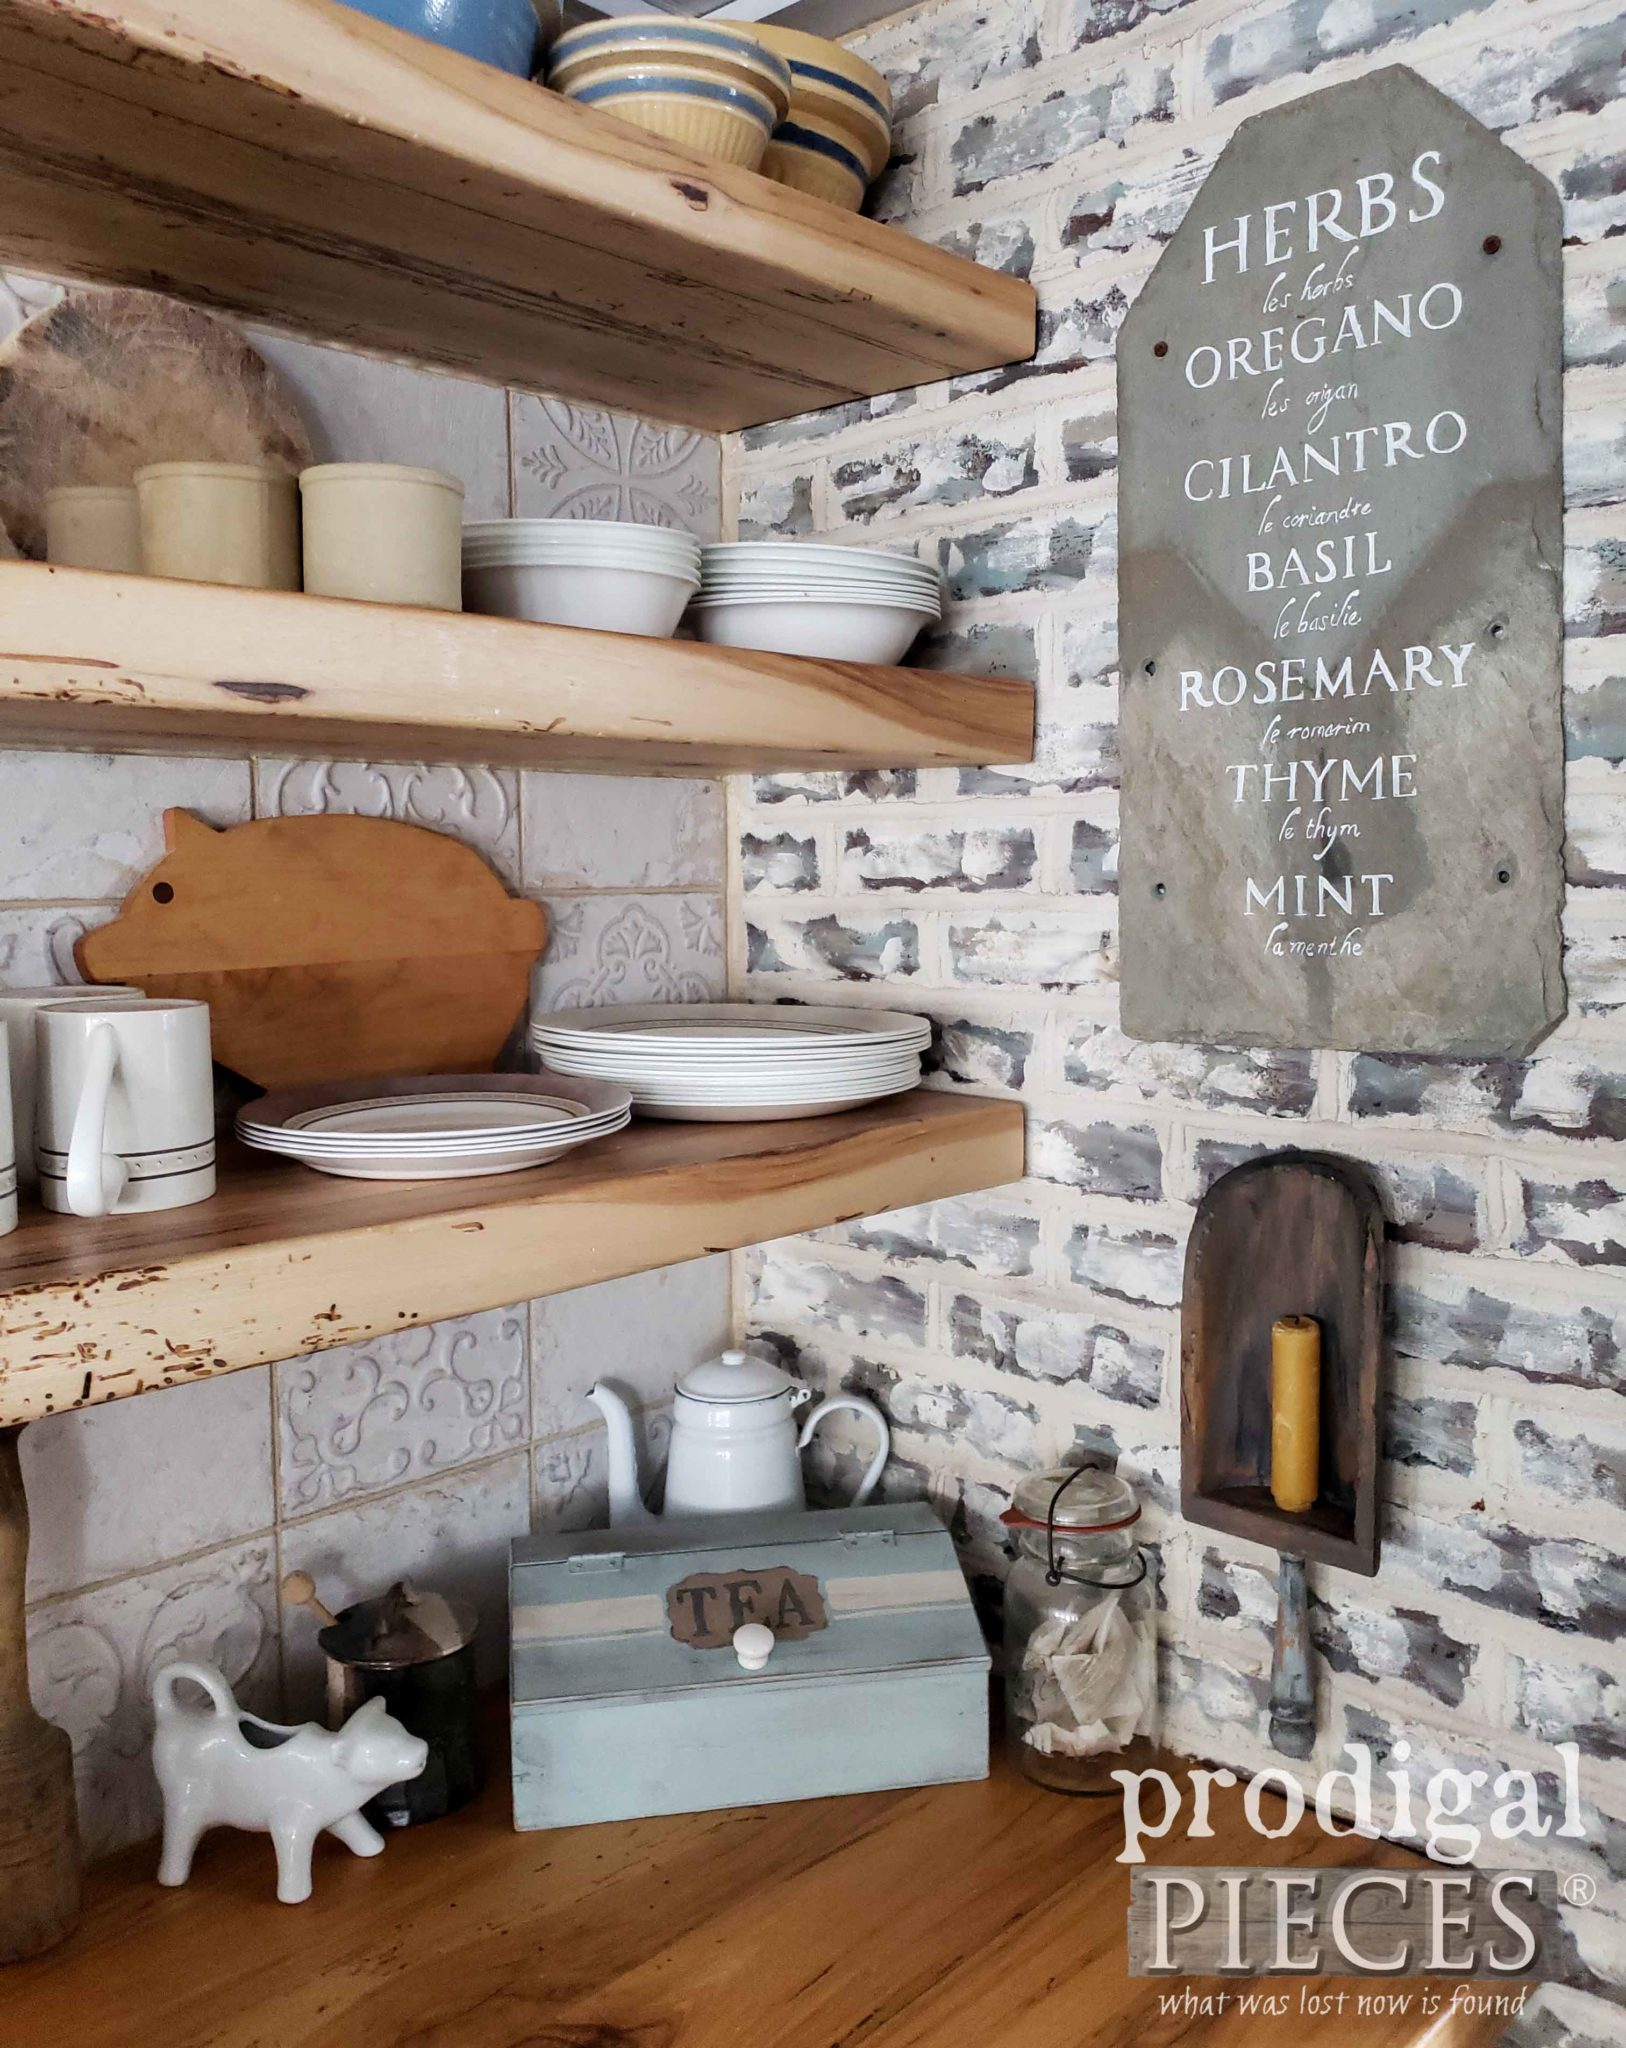 DIY Farmhouse Kitchen Decor from Thrift Store finds by Larissa of Prodigal Pieces | prodigalpieces.com #prodigalpieces #home #homedecor #homedecorideas #farmhouse #handmade #shopping #vintage